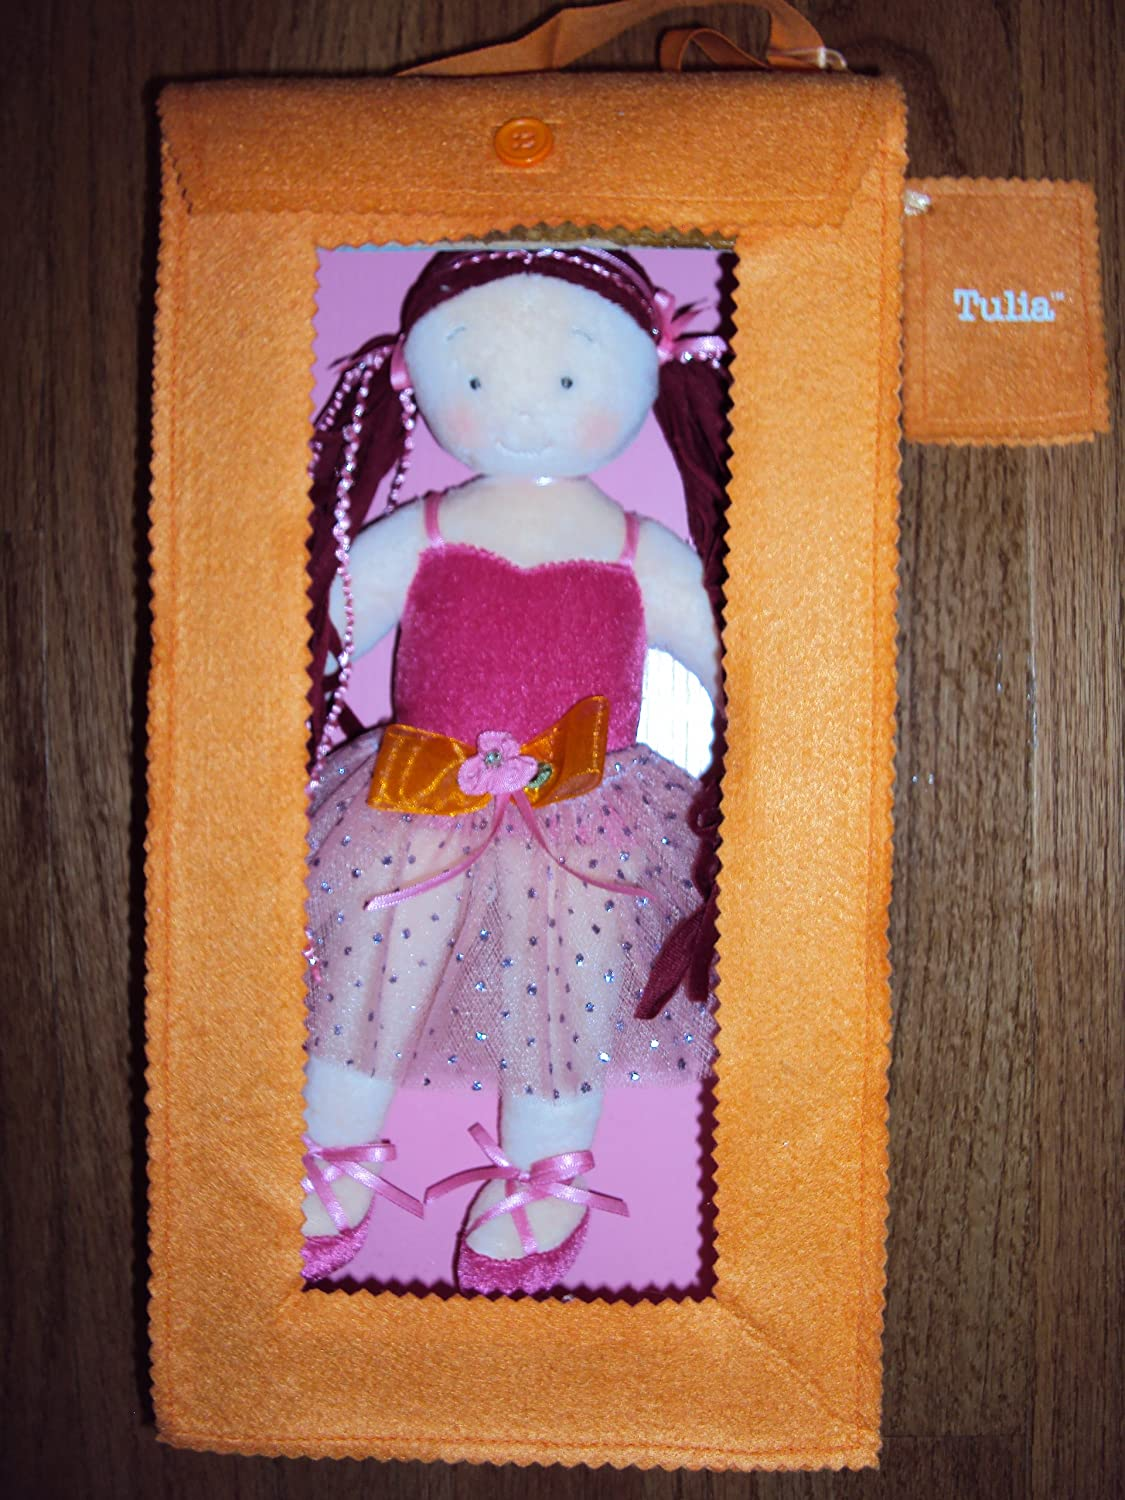 Tulia Pink Tutu in Orange Gift Box North American Bear Co.